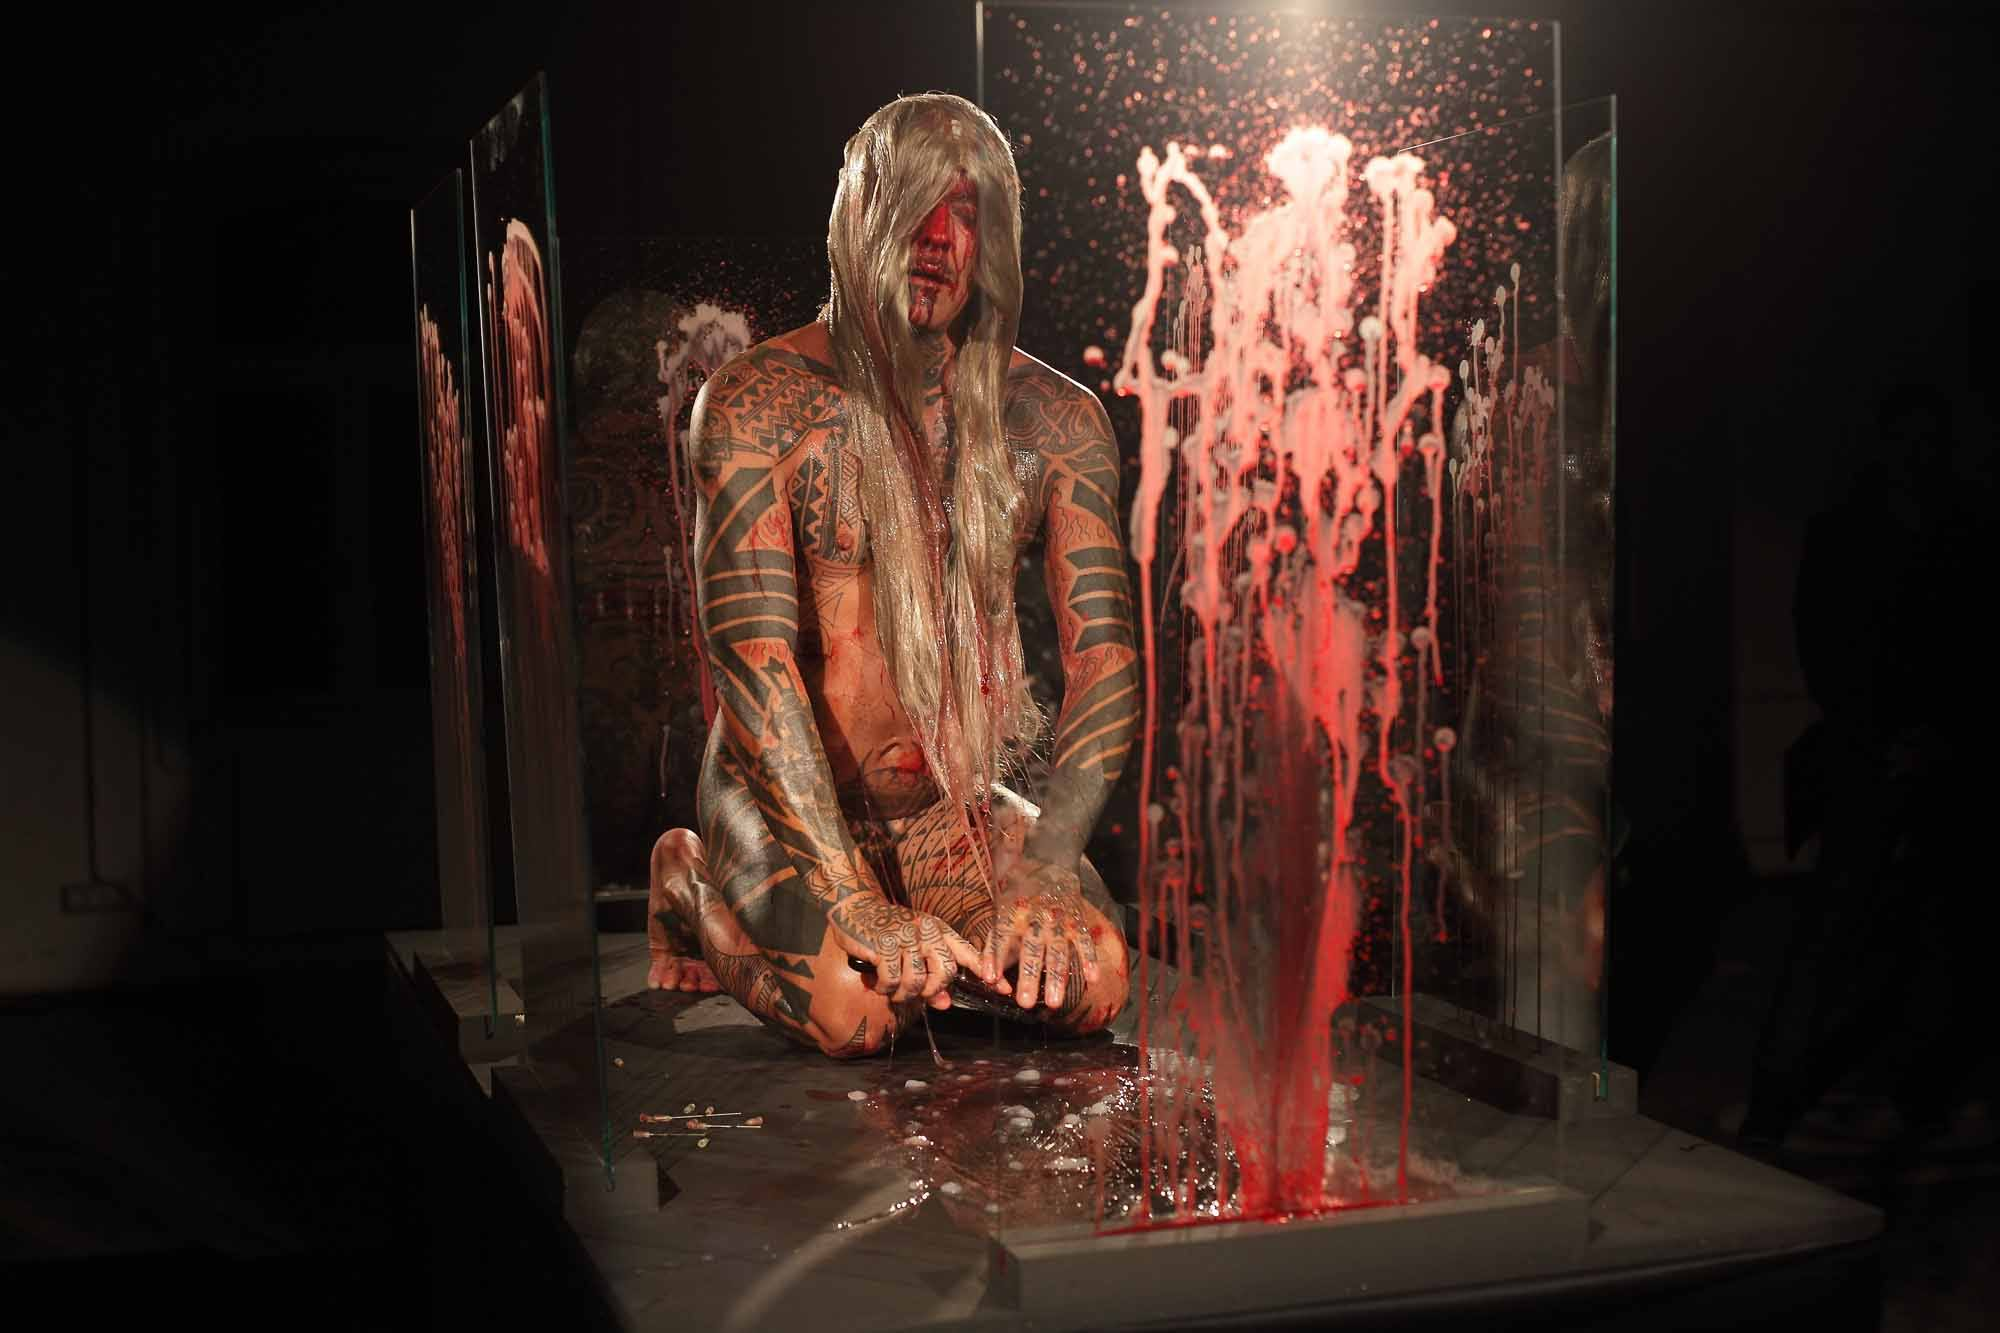 The artist is nude except for a blonde wig. He is surrounded by glass panes covered in his own blood.